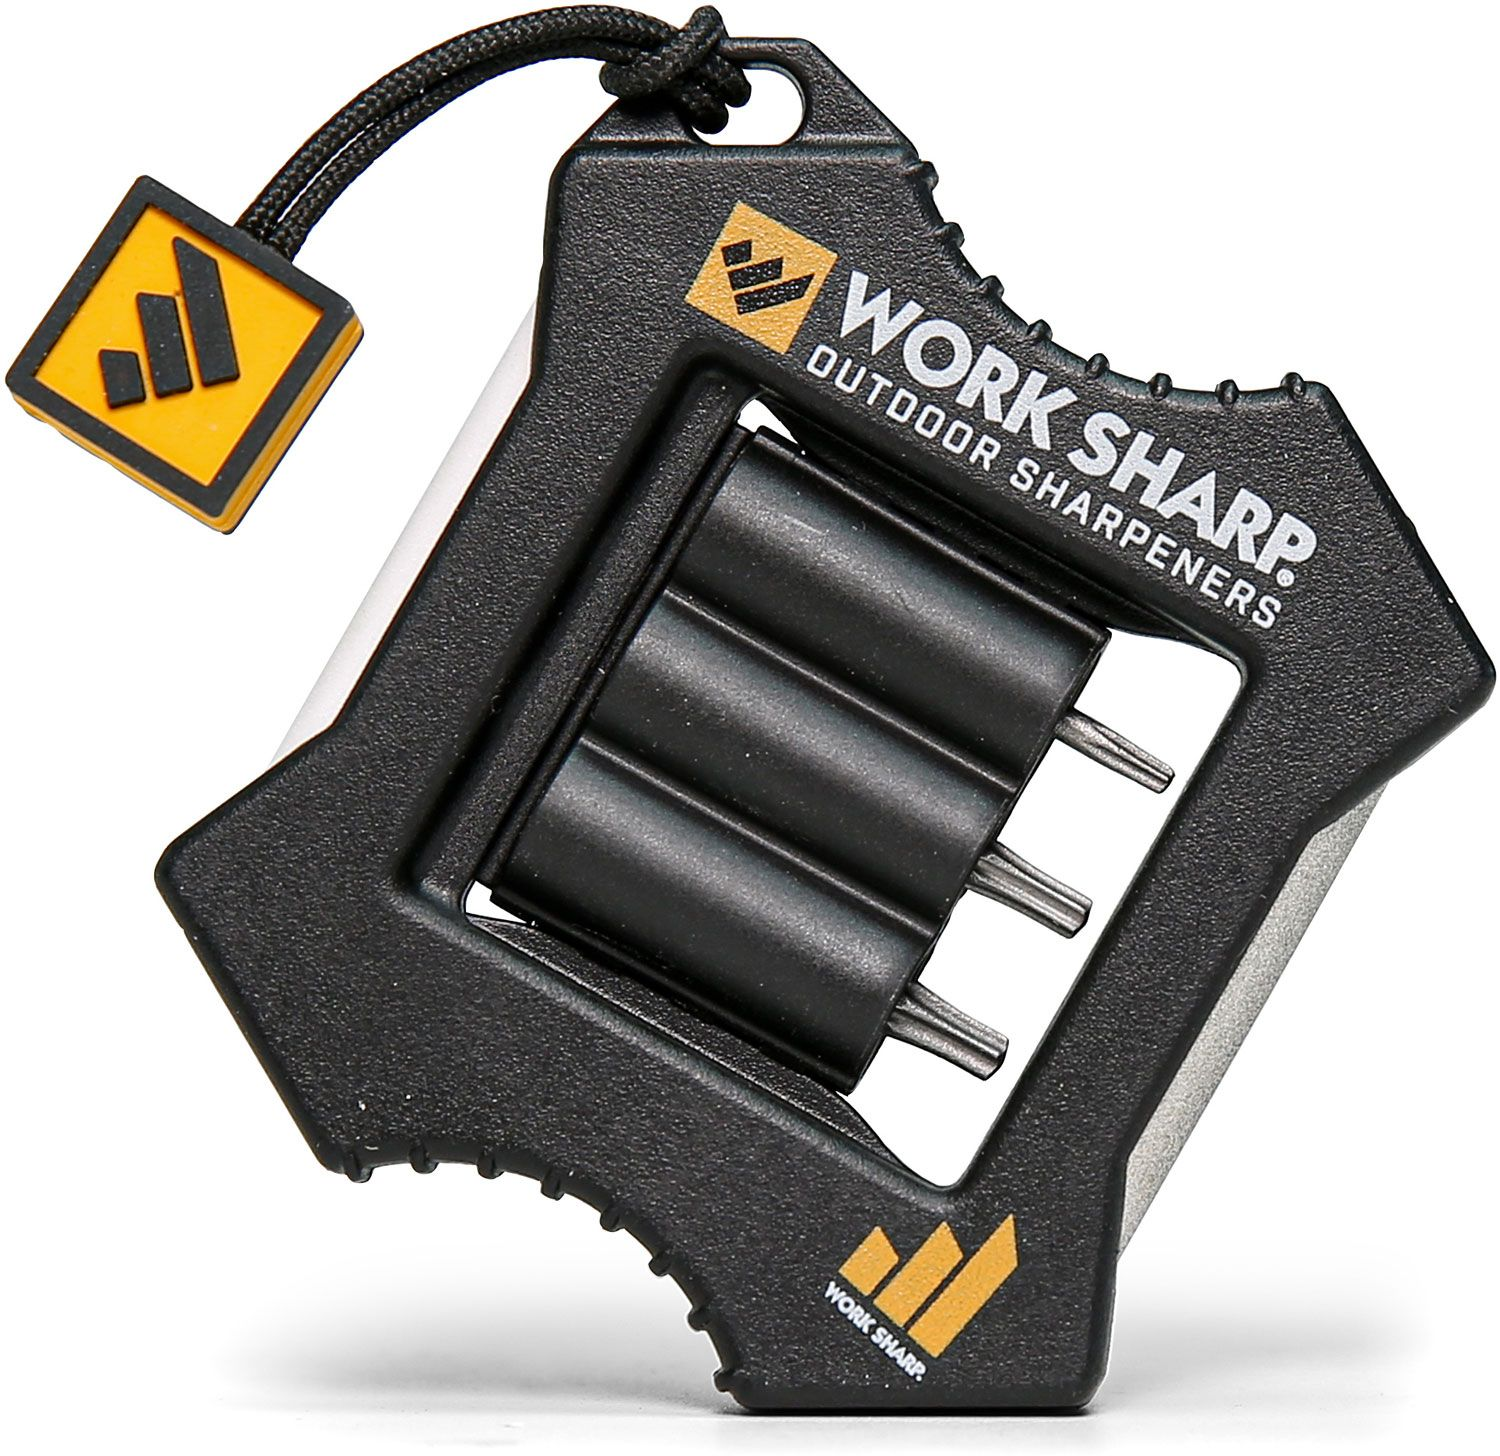 Work Sharp EDC Micro Sharpener with Integrated Knife Torx Tool